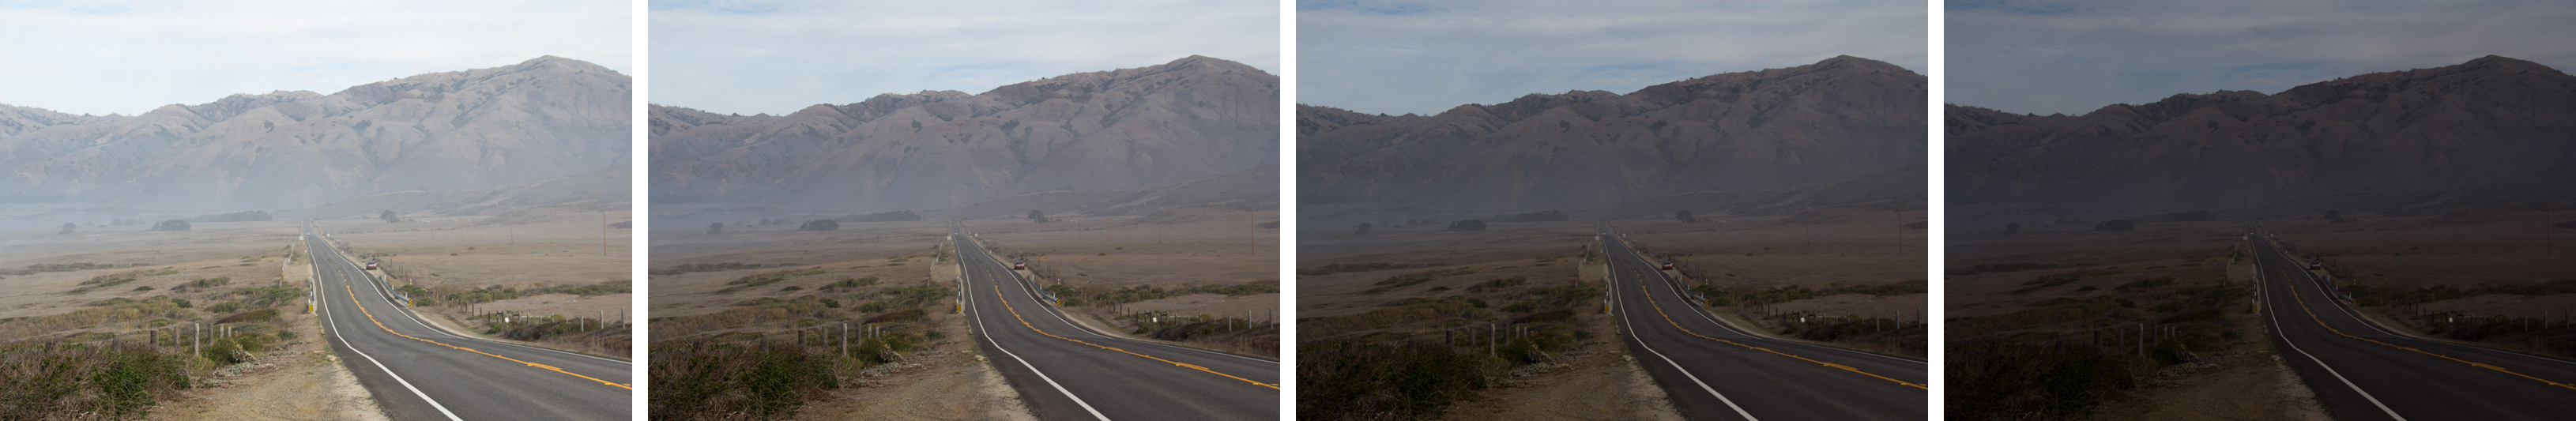 HDR Bracketed Shots: Open Road to the Mountains (California)